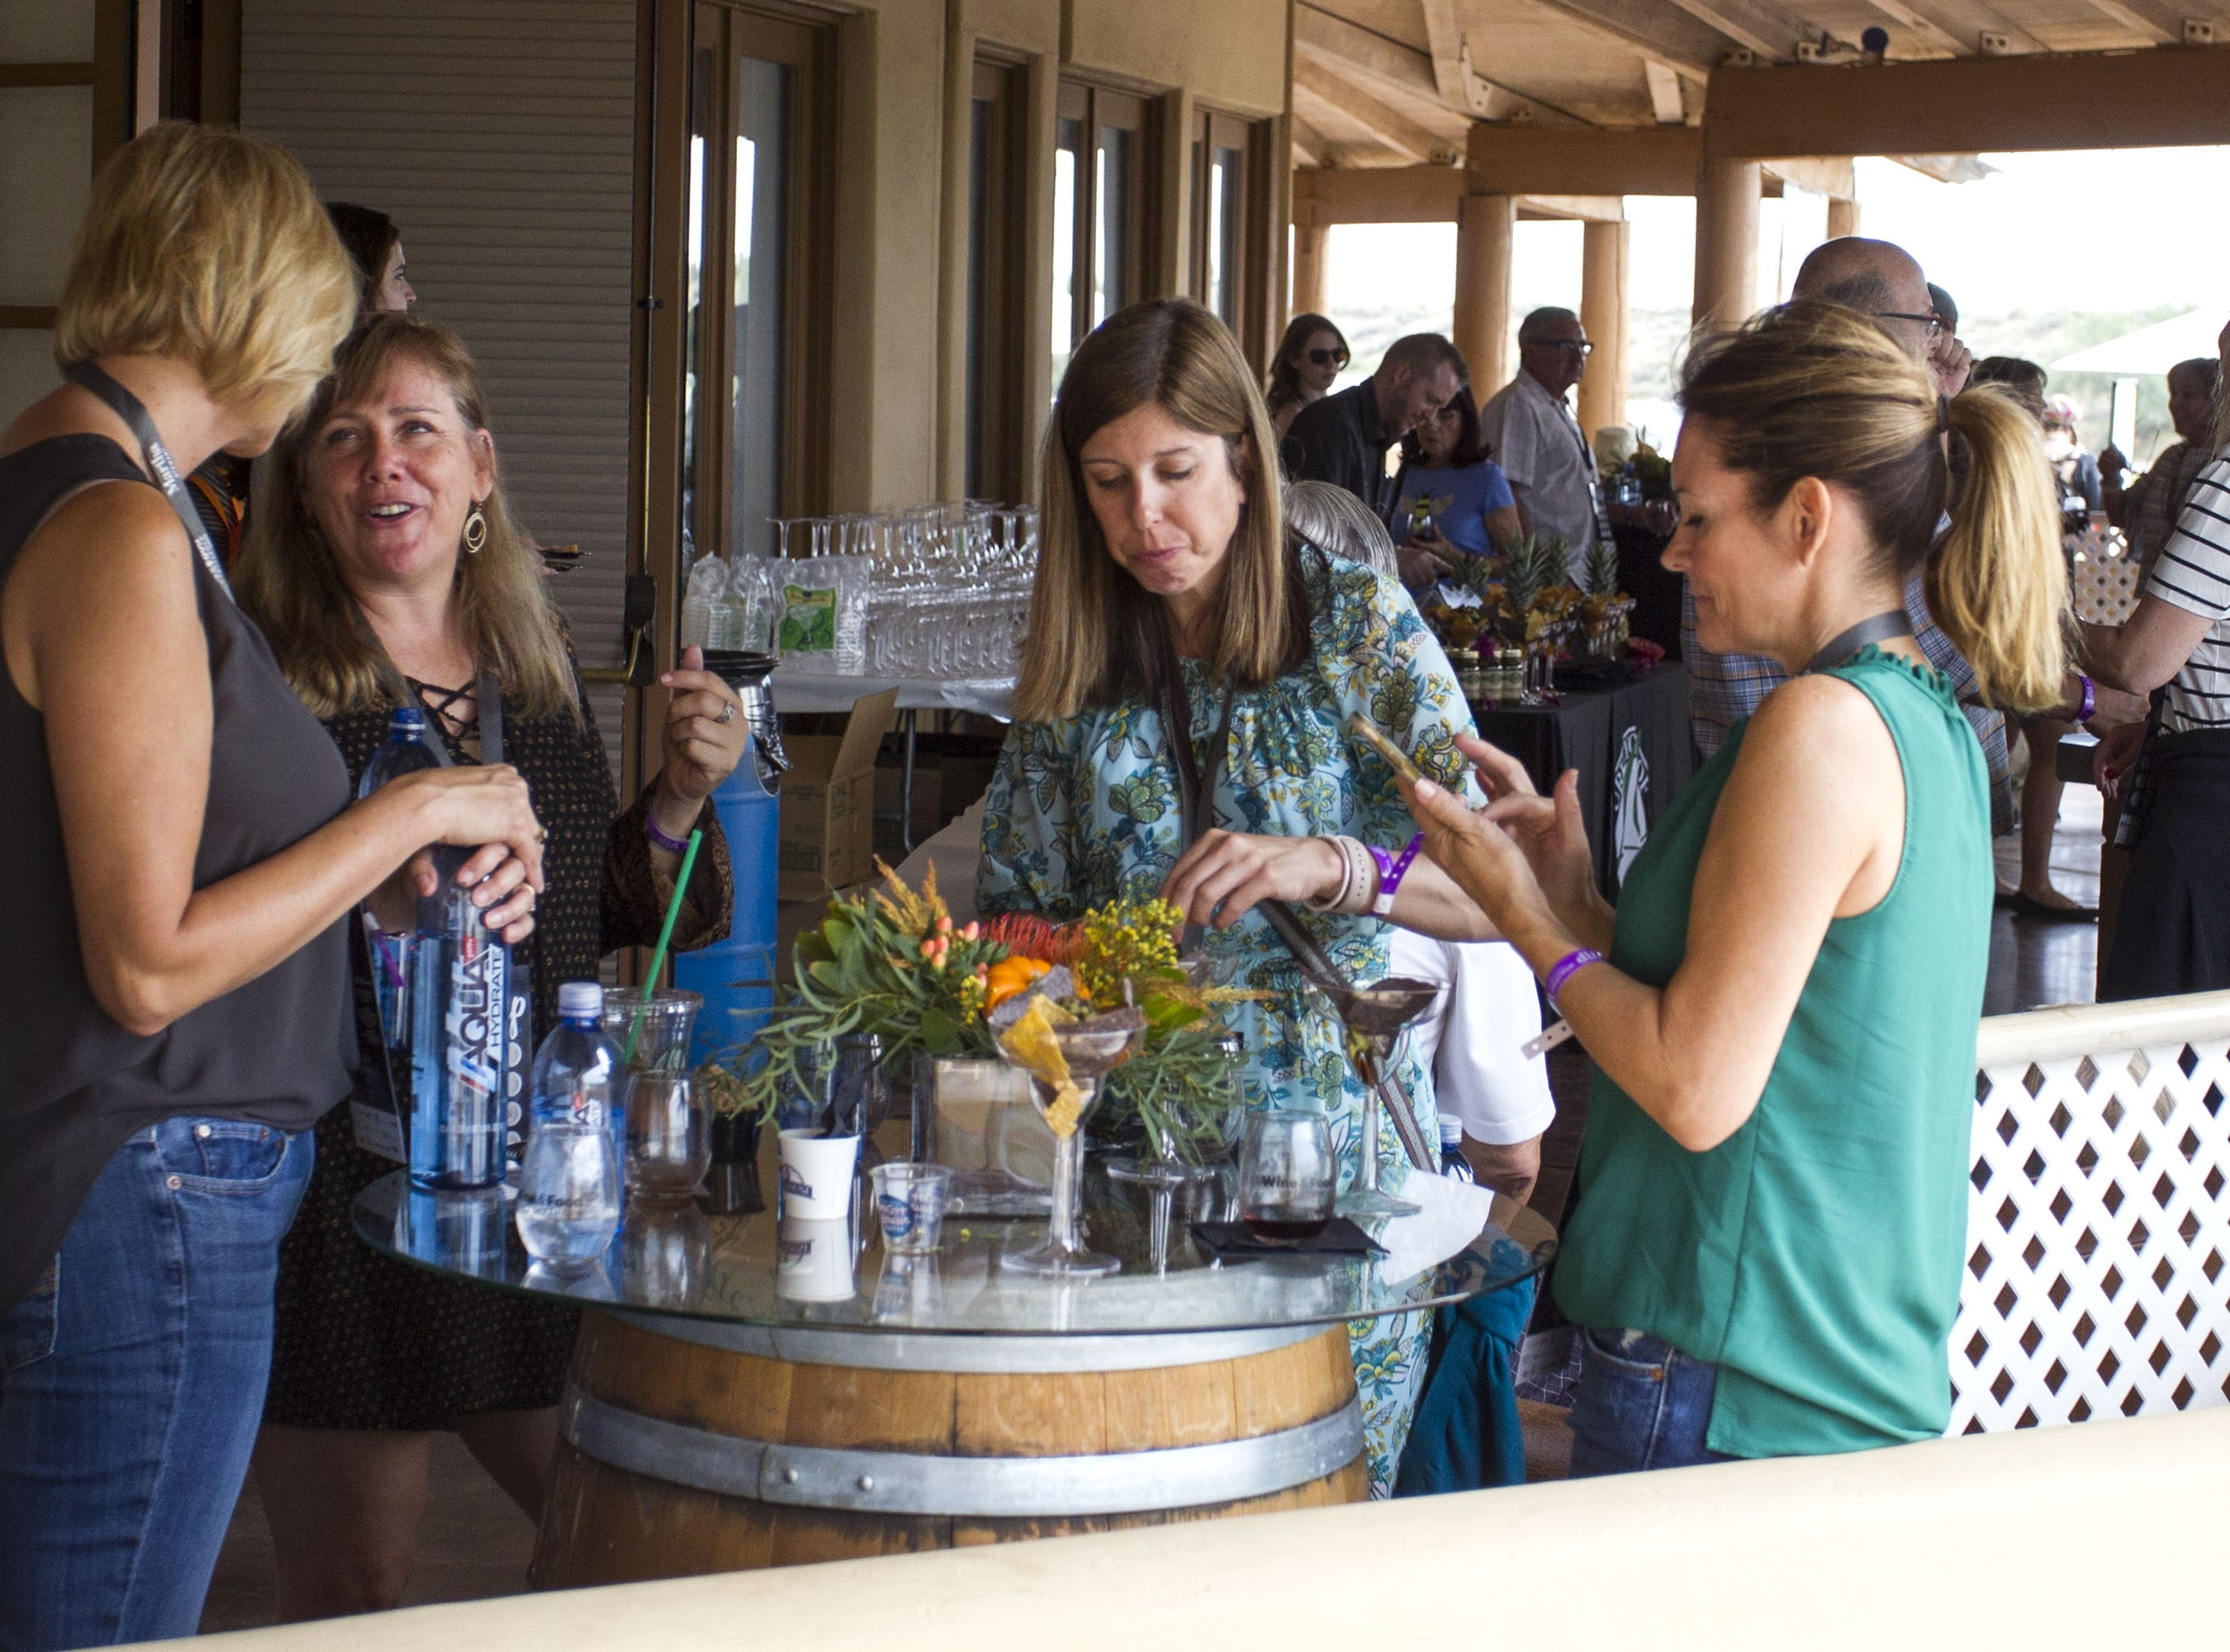 Food, wine and friends were plentiful during the azcentral Wine & Food Experience at WestWorld of Scottsdale, Sunday, Nov. 4, 2018.